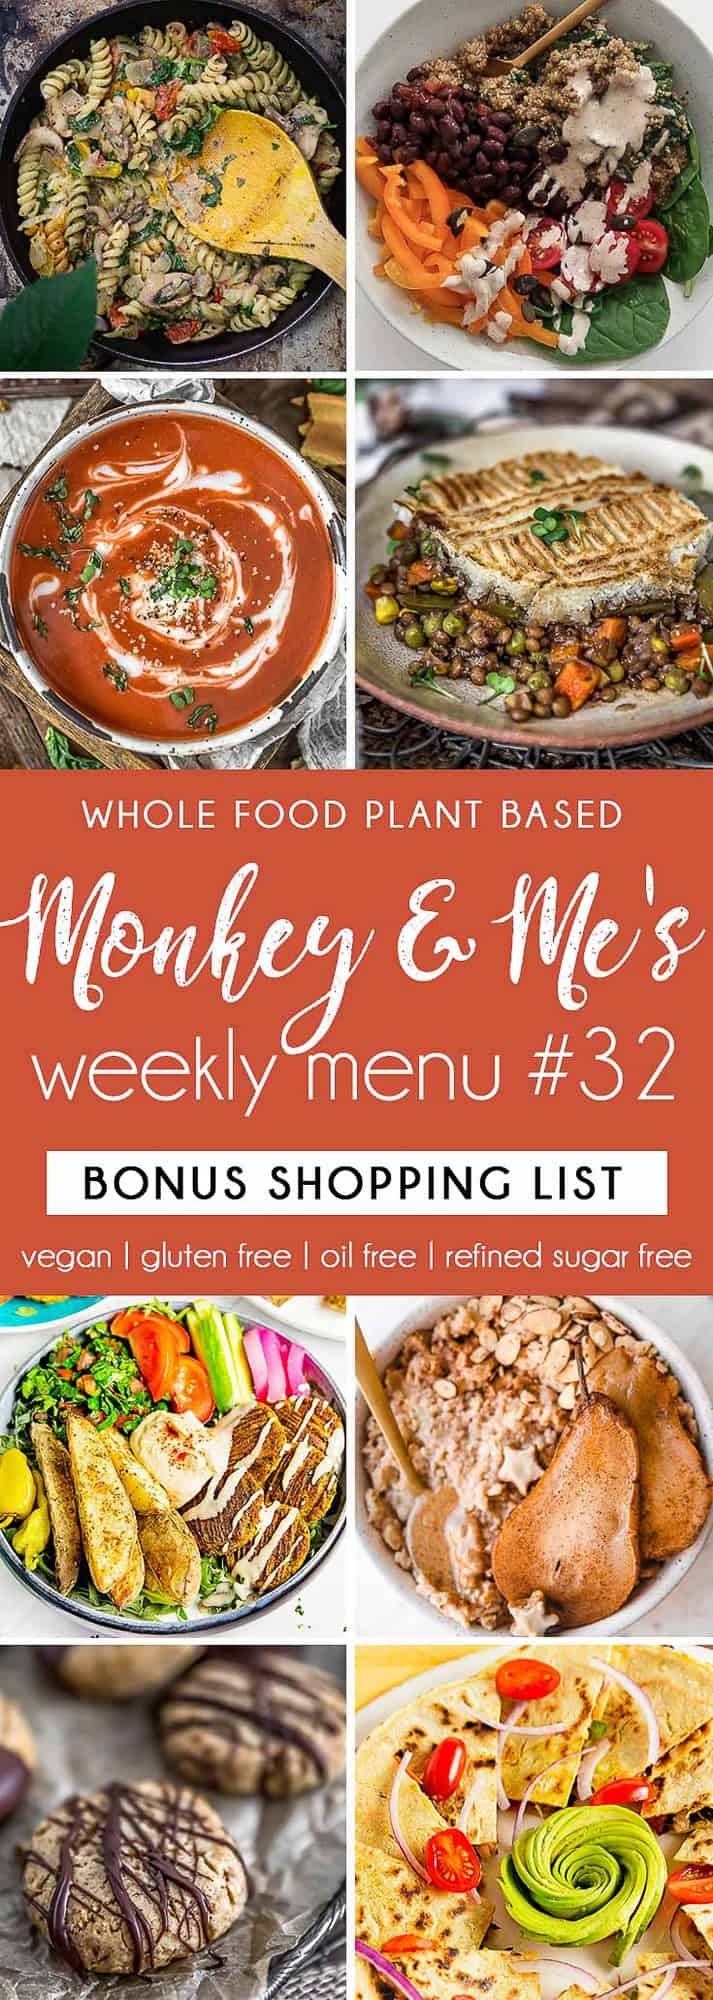 Monkey and Me's Menu 32 featuring 8 recipes